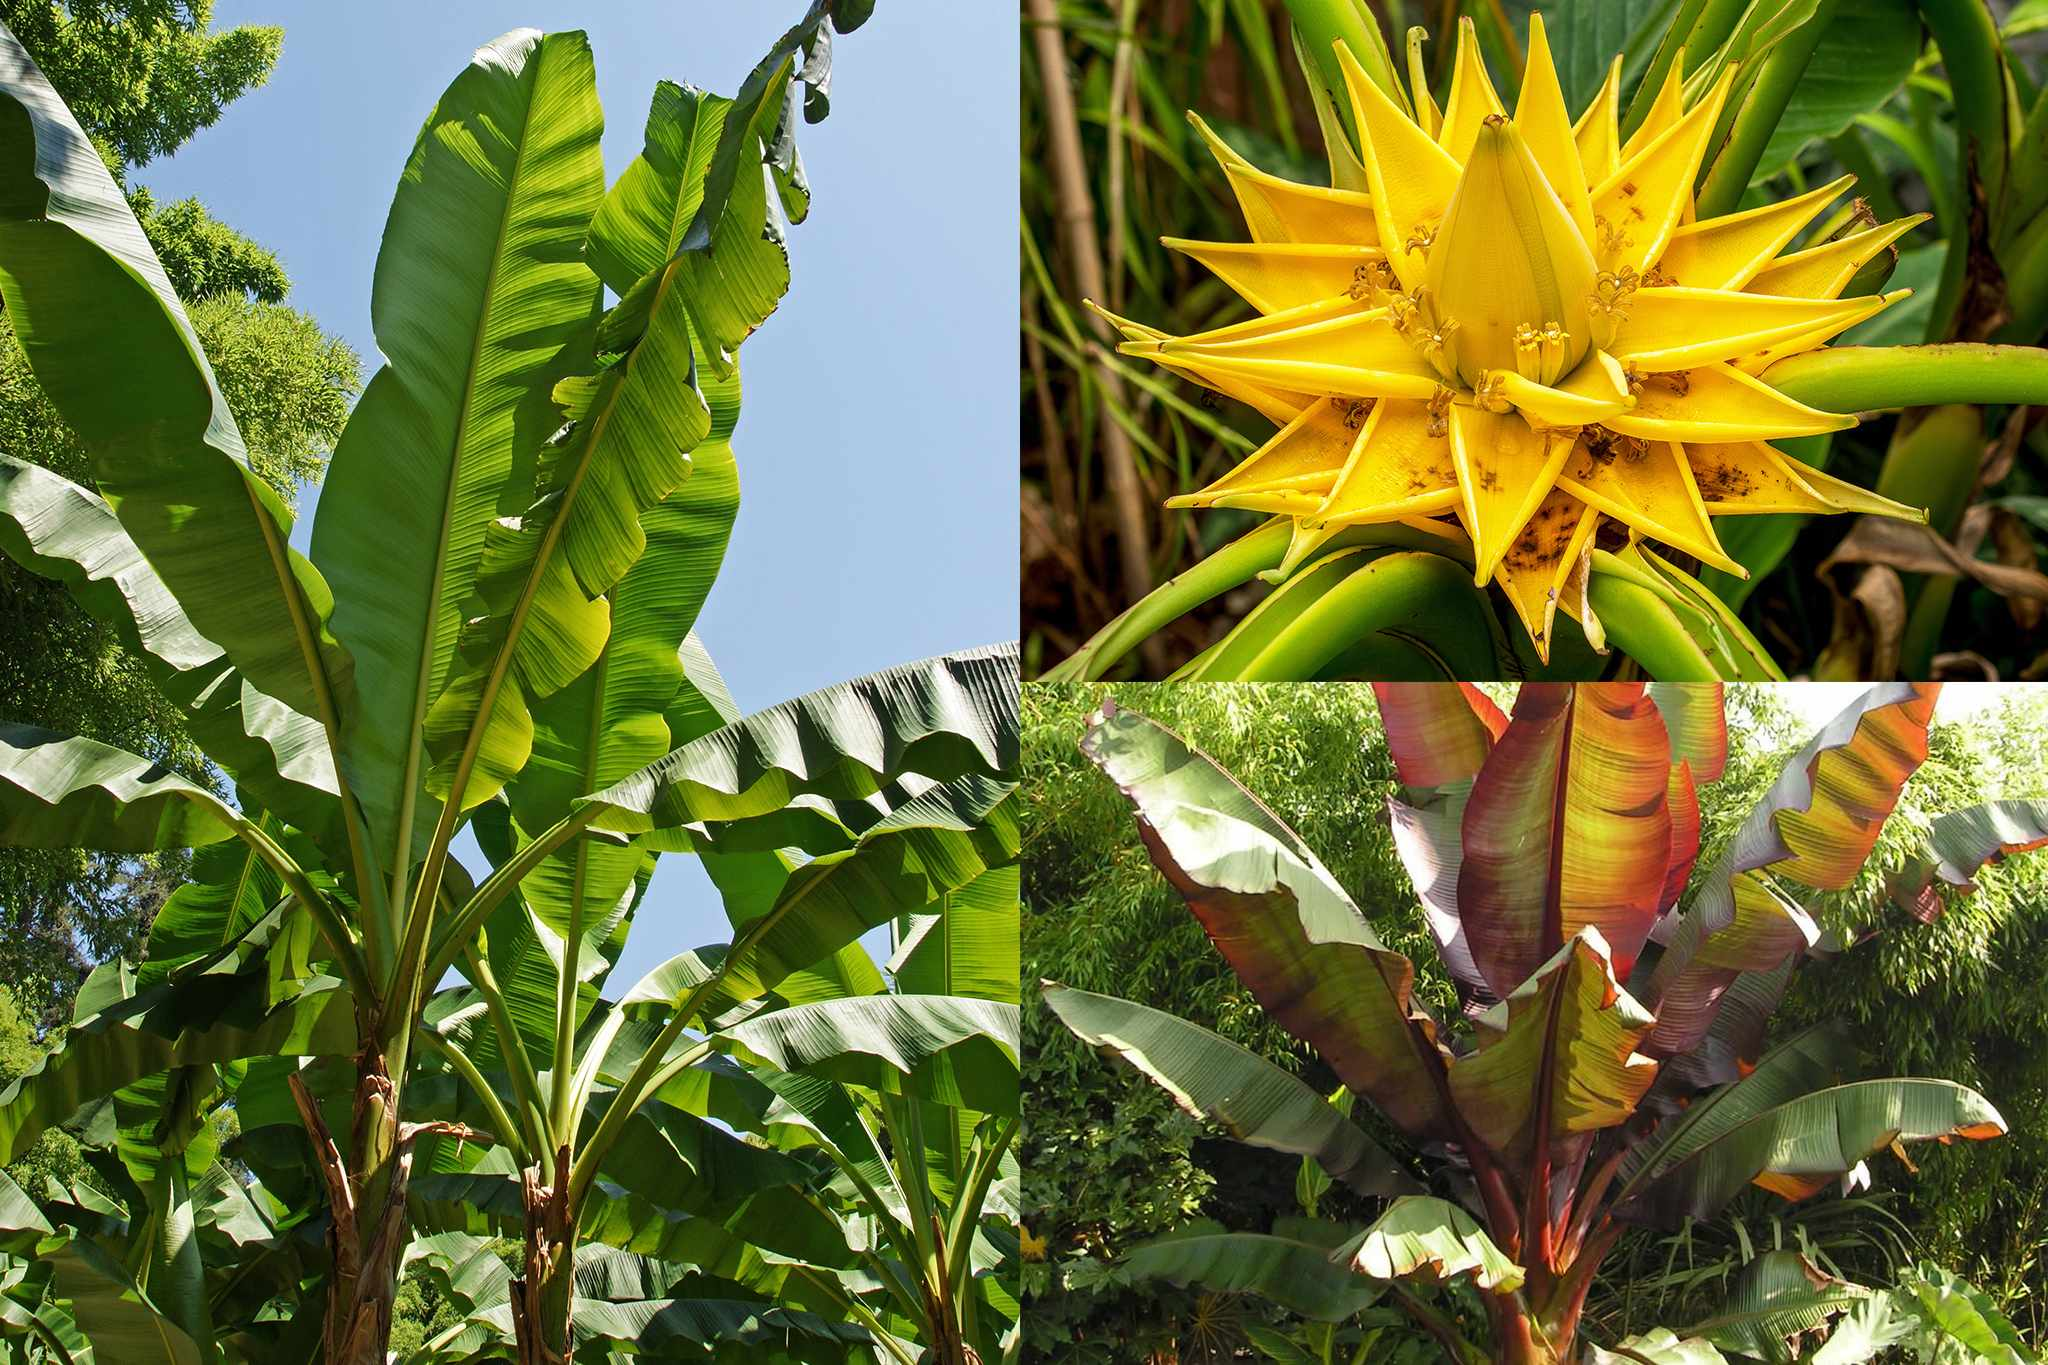 Banana plants from Blooming Direct